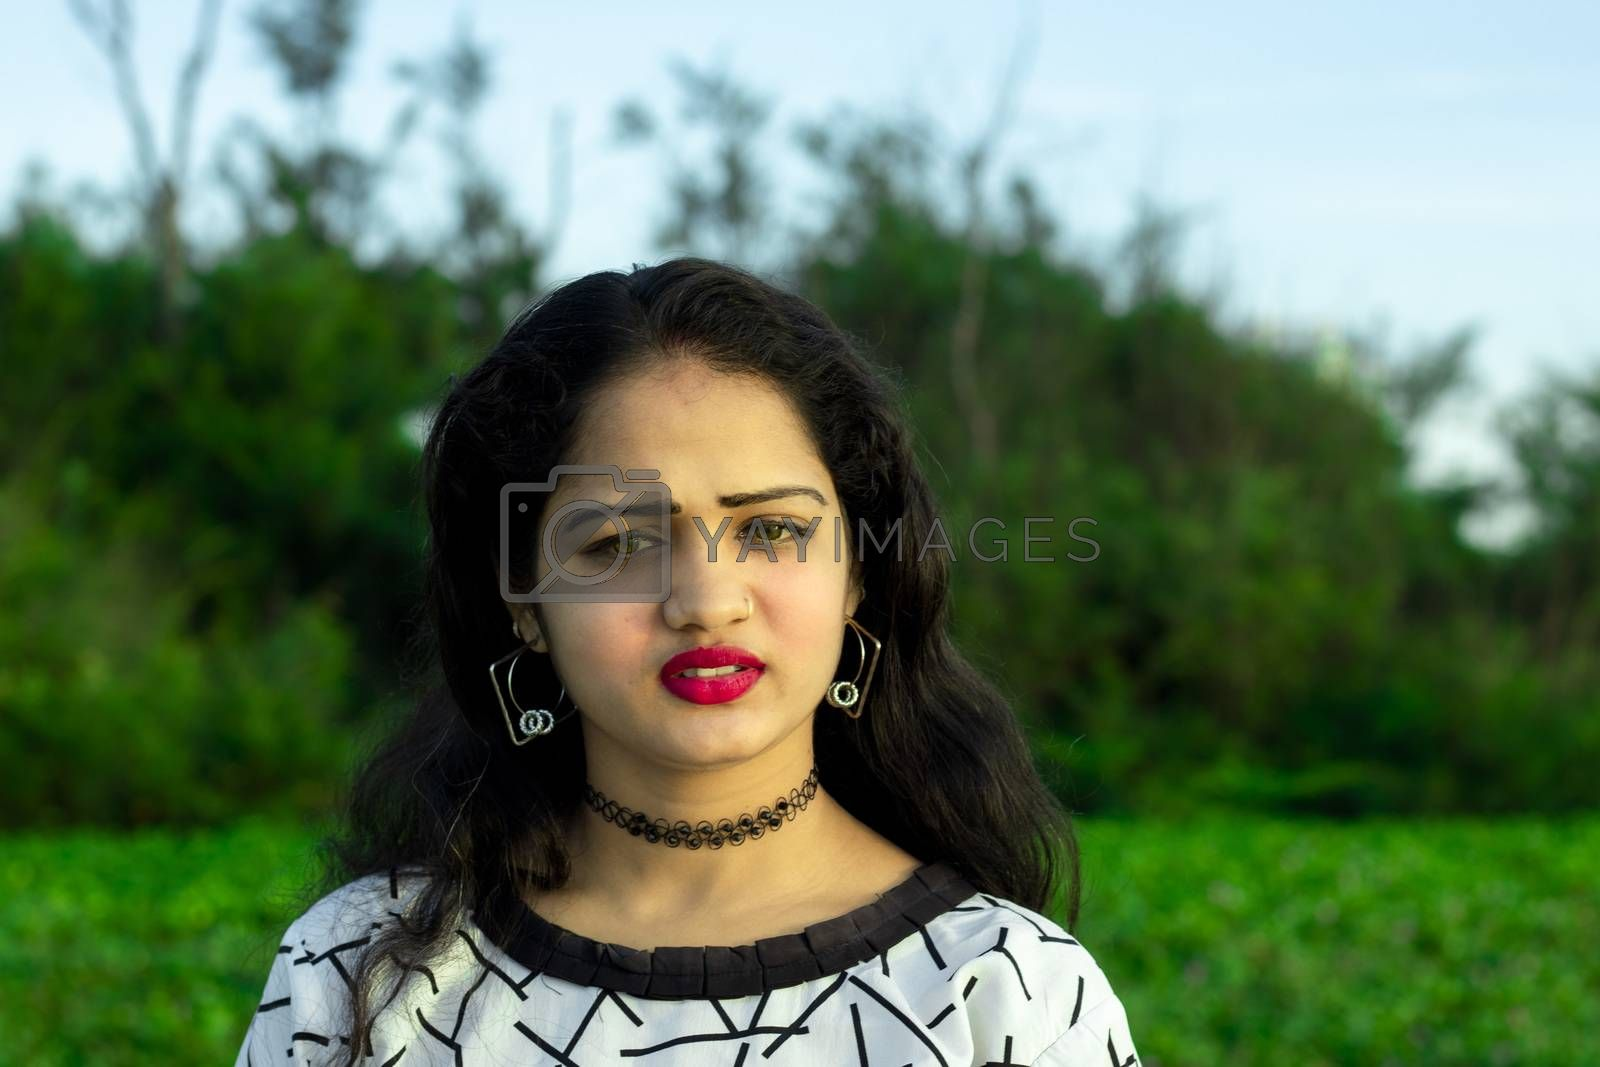 an indian model with closeup beautiful face and green blurred background of outside trees